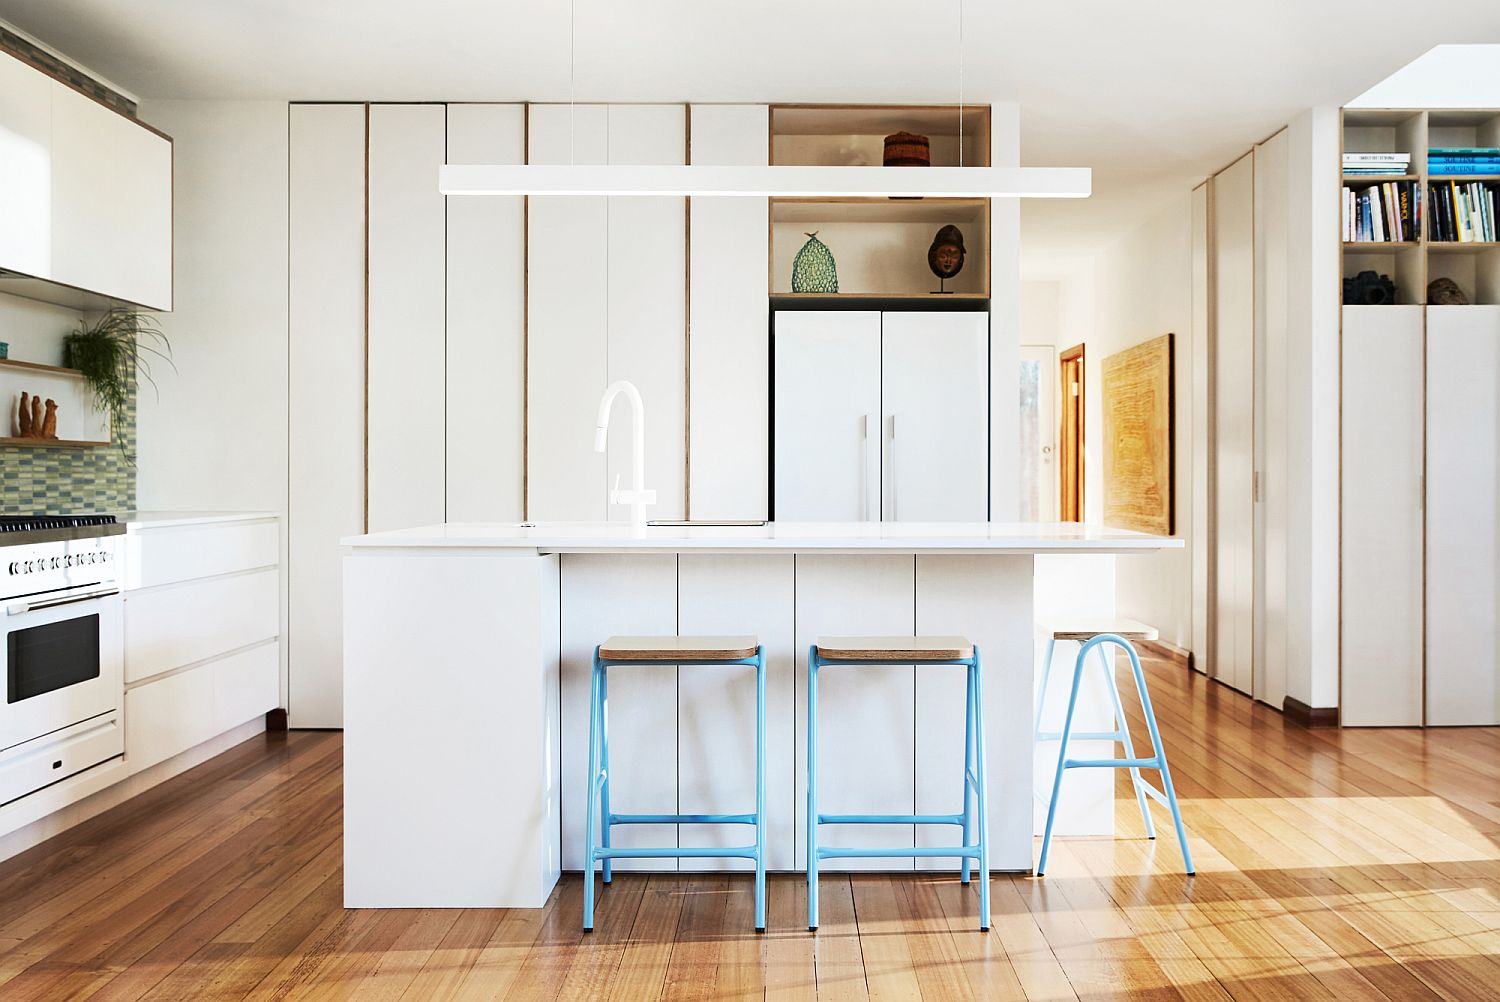 It-is-the-bar-stools-that-add-pops-of-blue-to-this-exquisite-white-kitchen